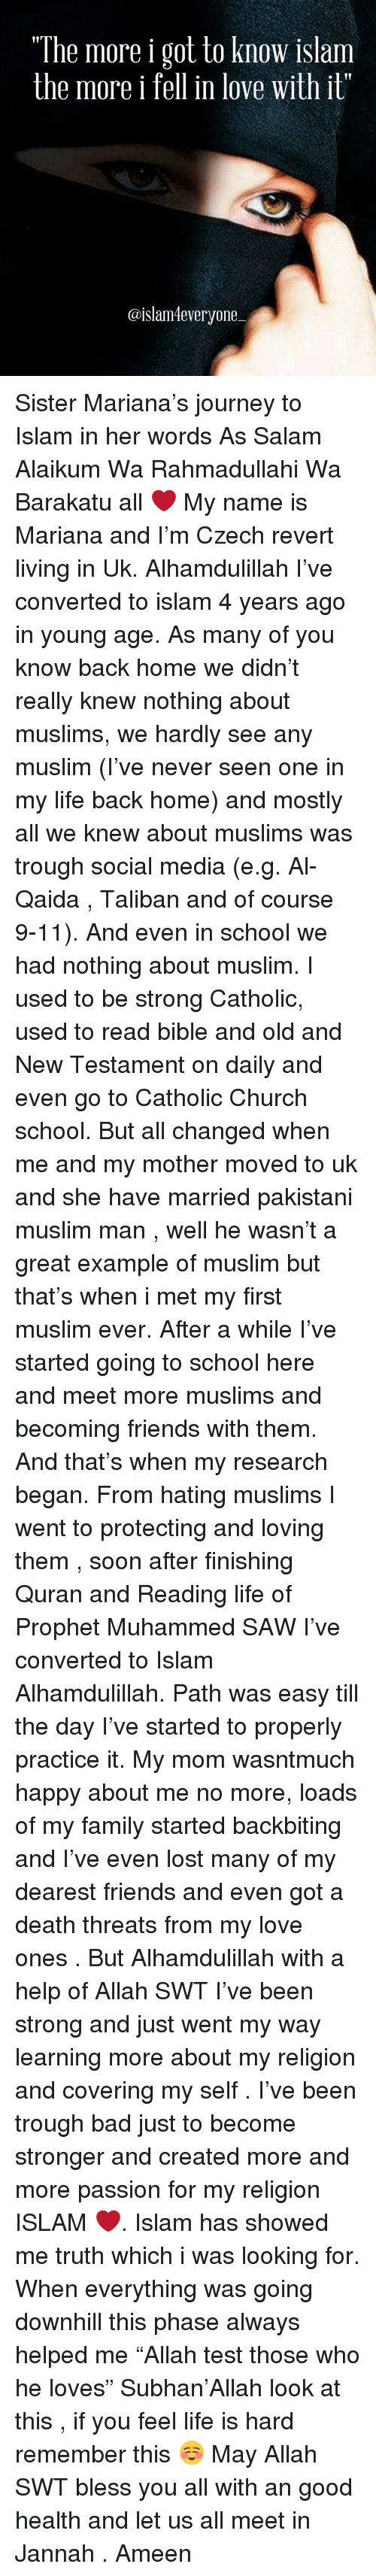 """Talibanned: """"The more i got to know islam  the more i  fell in love with it""""  @islam 4everyone Sister Mariana's journey to Islam in her words As Salam Alaikum Wa Rahmadullahi Wa Barakatu all ❤️ My name is Mariana and I'm Czech revert living in Uk. Alhamdulillah I've converted to islam 4 years ago in young age. As many of you know back home we didn't really knew nothing about muslims, we hardly see any muslim (I've never seen one in my life back home) and mostly all we knew about muslims was trough social media (e.g. Al-Qaida , Taliban and of course 9-11). And even in school we had nothing about muslim. I used to be strong Catholic, used to read bible and old and New Testament on daily and even go to Catholic Church school. But all changed when me and my mother moved to uk and she have married pakistani muslim man , well he wasn't a great example of muslim but that's when i met my first muslim ever. After a while I've started going to school here and meet more muslims and becoming friends with them. And that's when my research began. From hating muslims I went to protecting and loving them , soon after finishing Quran and Reading life of Prophet Muhammed SAW I've converted to Islam Alhamdulillah. Path was easy till the day I've started to properly practice it. My mom wasntmuch happy about me no more, loads of my family started backbiting and I've even lost many of my dearest friends and even got a death threats from my love ones . But Alhamdulillah with a help of Allah SWT I've been strong and just went my way learning more about my religion and covering my self . I've been trough bad just to become stronger and created more and more passion for my religion ISLAM ❤️. Islam has showed me truth which i was looking for. When everything was going downhill this phase always helped me """"Allah test those who he loves"""" Subhan'Allah look at this , if you feel life is hard remember this ☺️ May Allah SWT bless you all with an good health and let us all meet in Jannah . Ameen"""